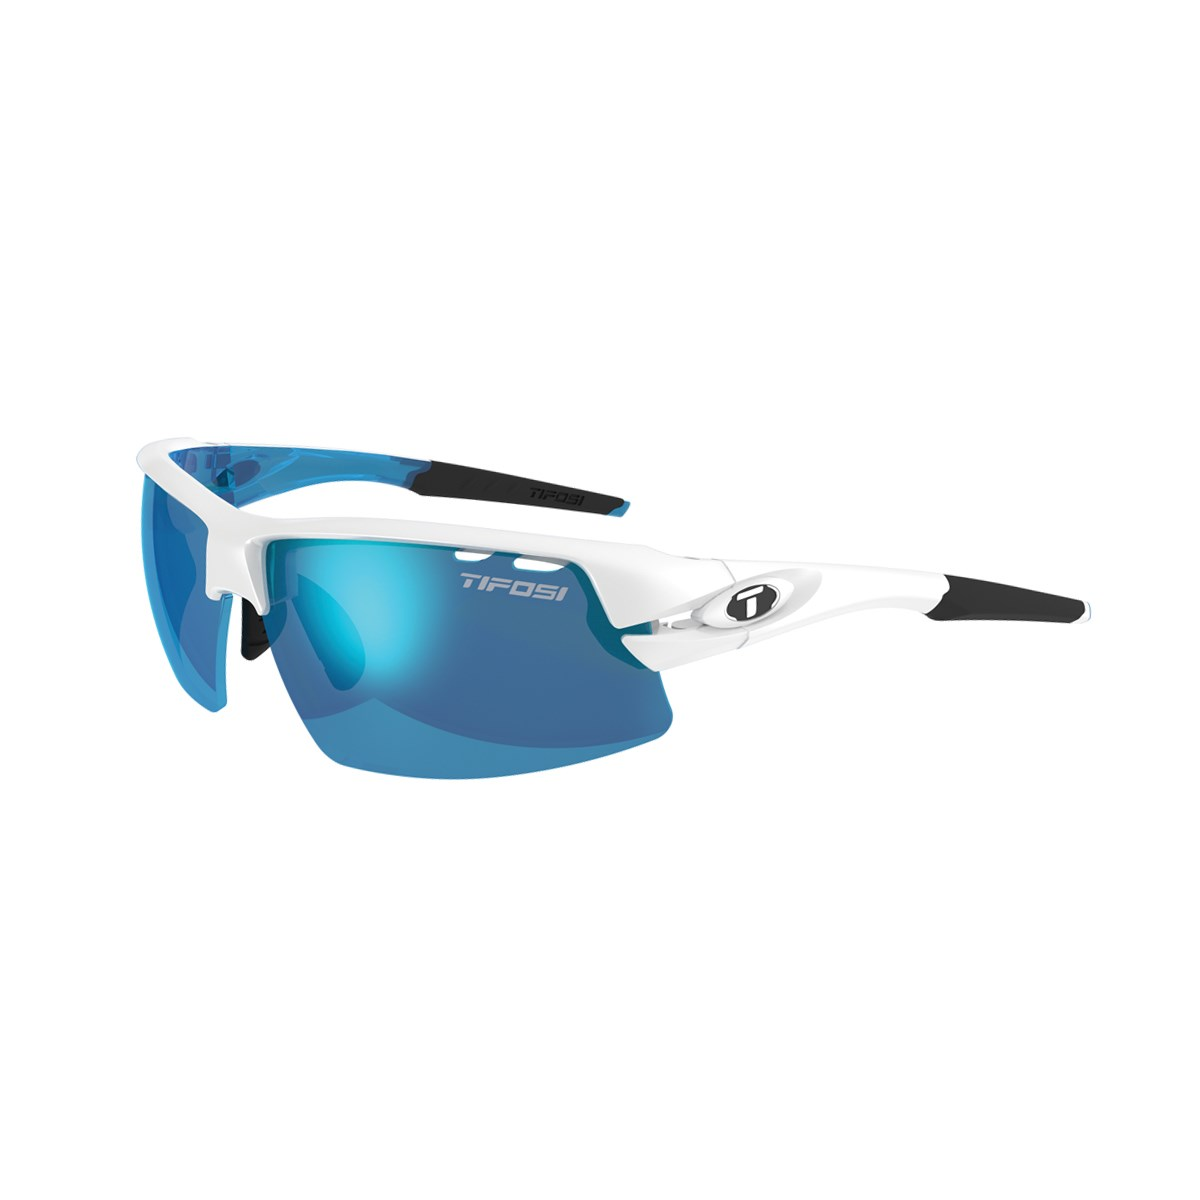 b4d8567372 Tifosi Crit Half Frame Interchangeable Clarion Lens Sunglasses. 0 (Be the  first to add a review!)